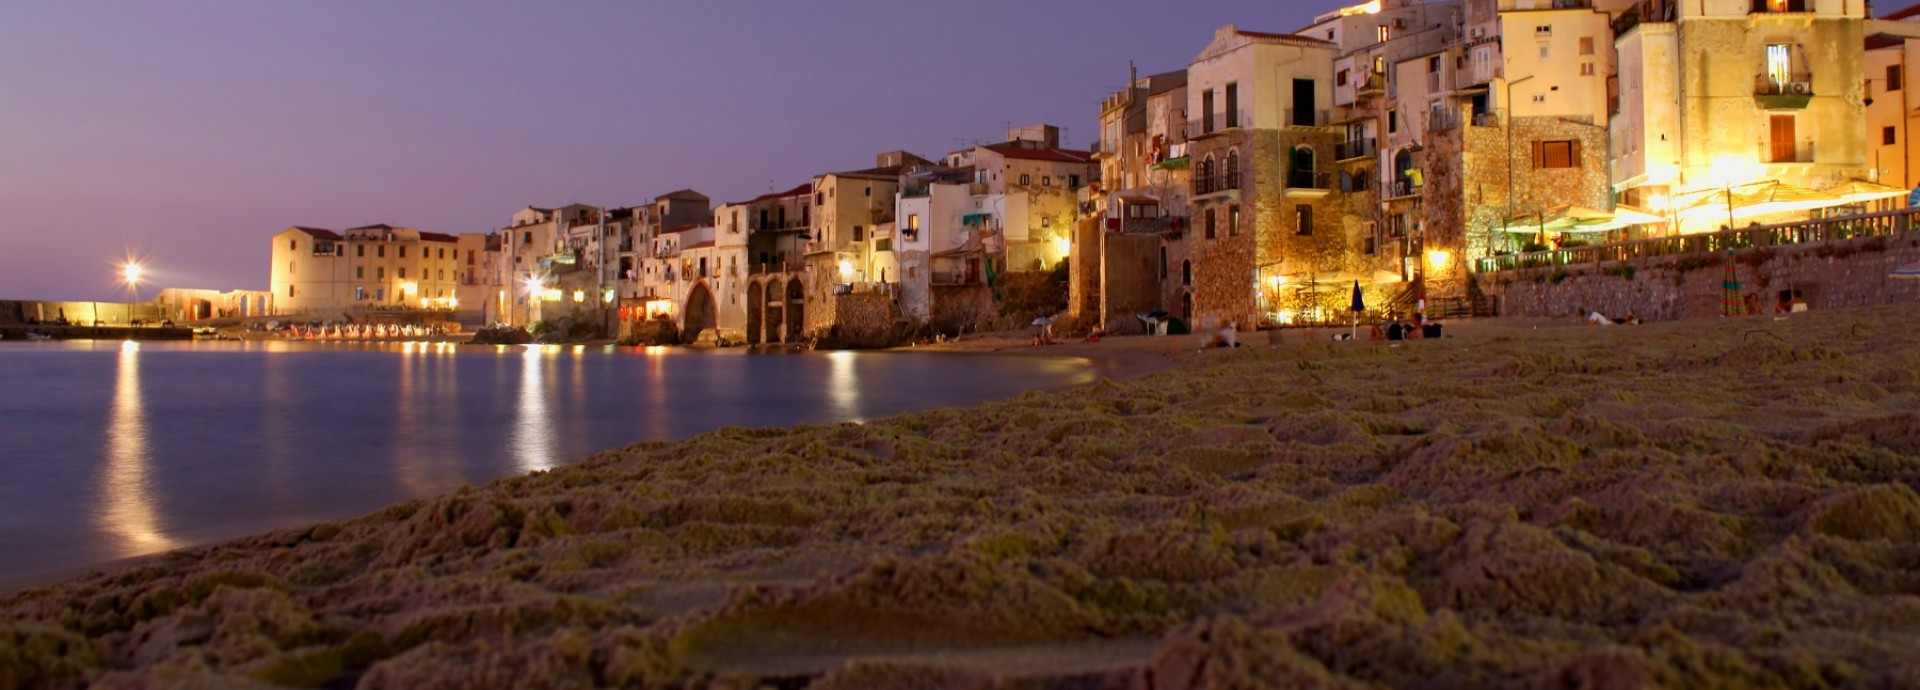 Cefalu at night